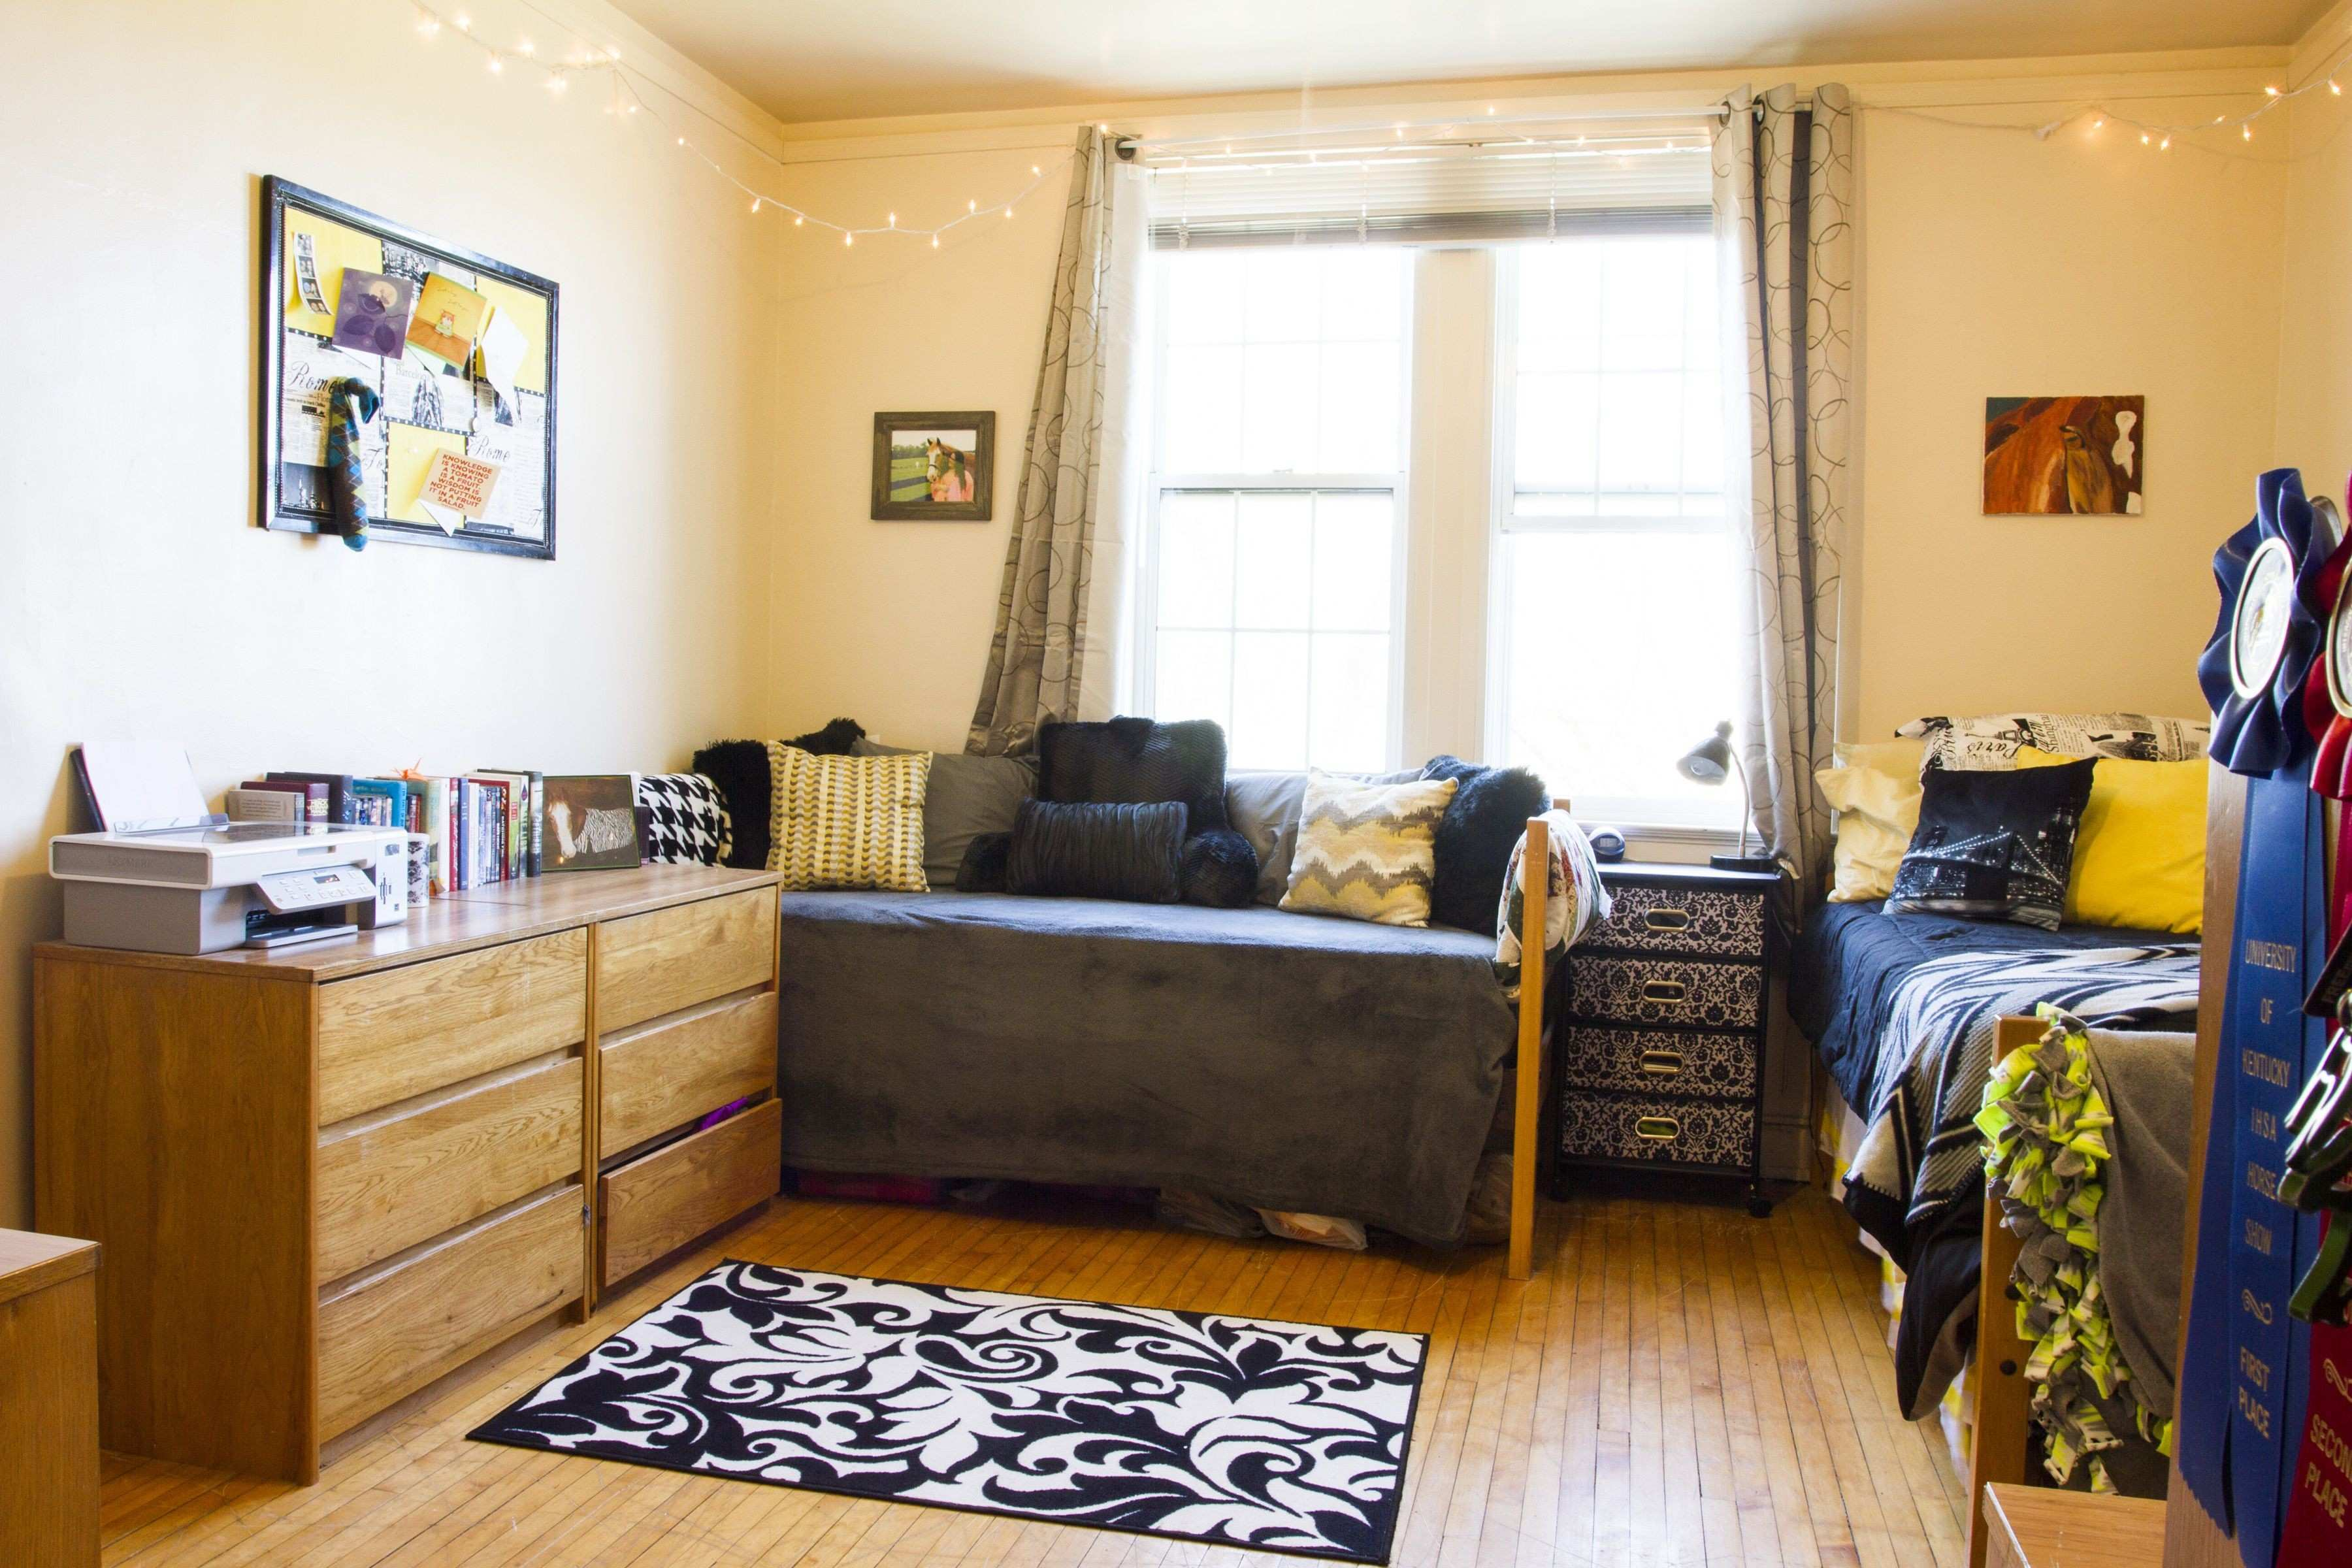 College Living Room Decorating Ideas New An Example Dorm Room